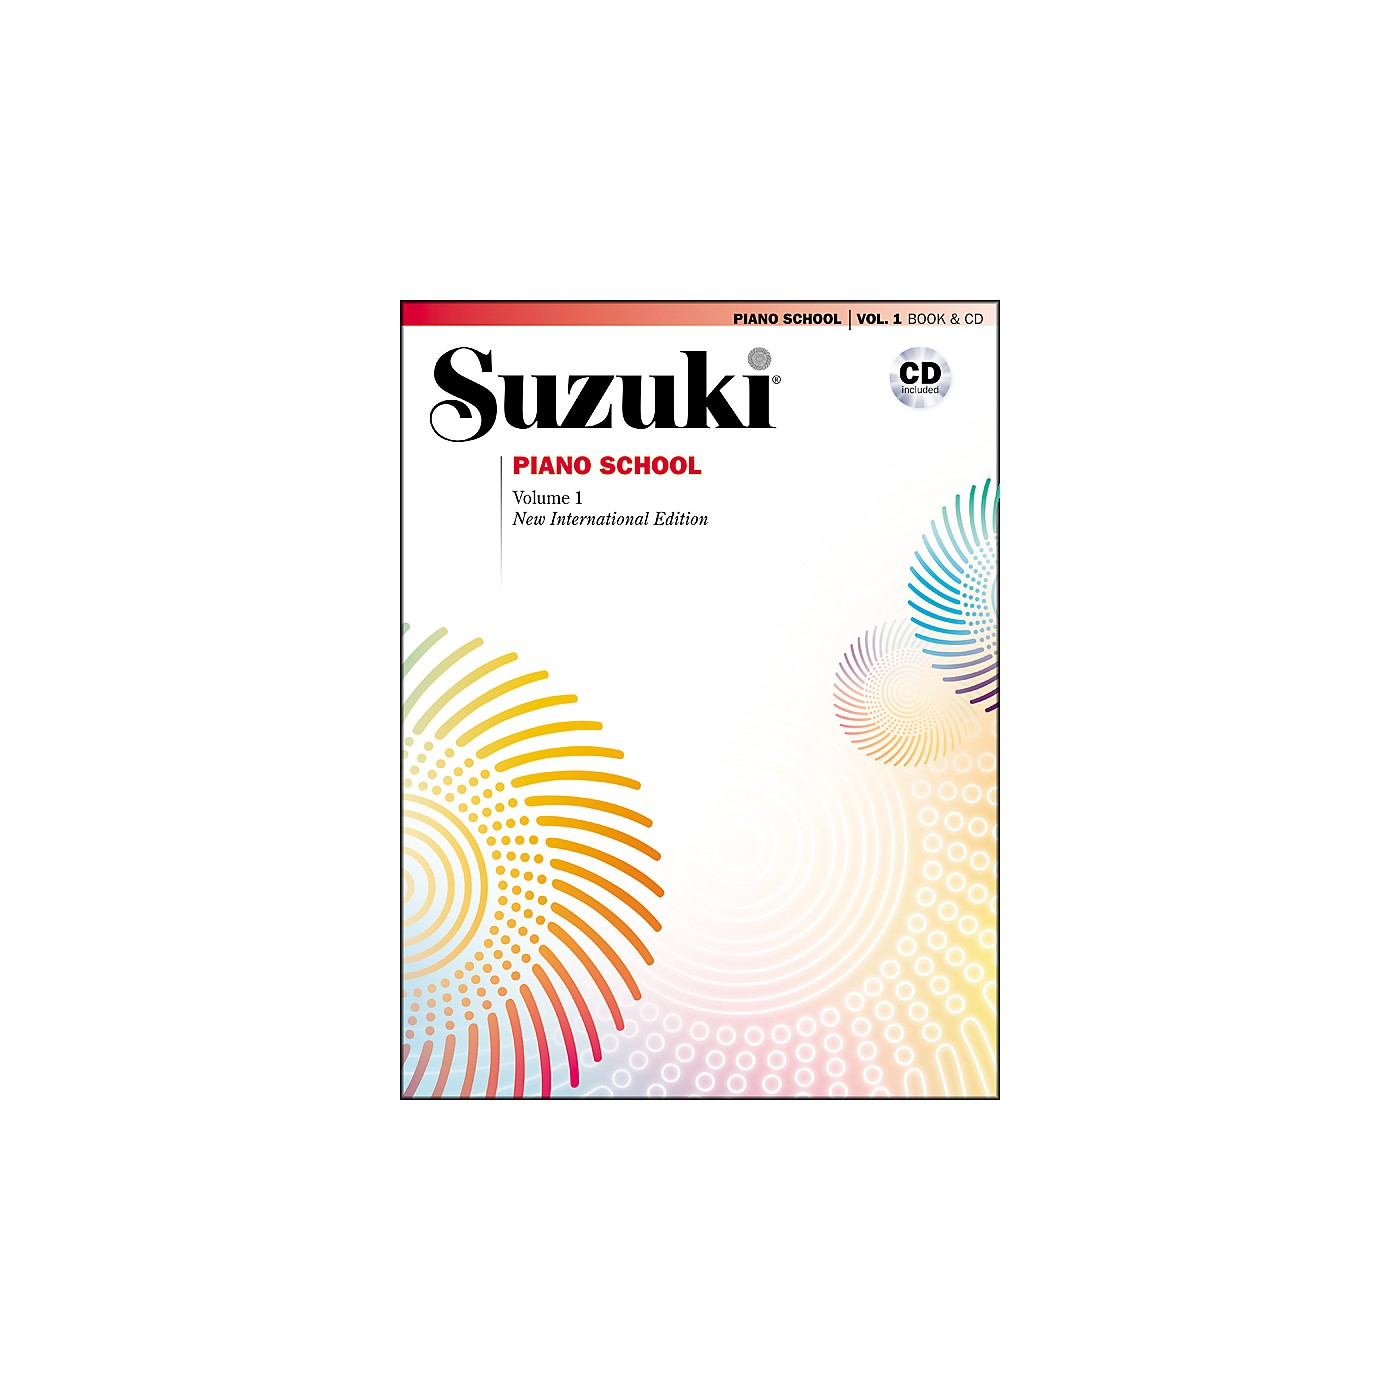 Suzuki Suzuki Piano School New International Edition Piano Book and CD Volume 1 thumbnail